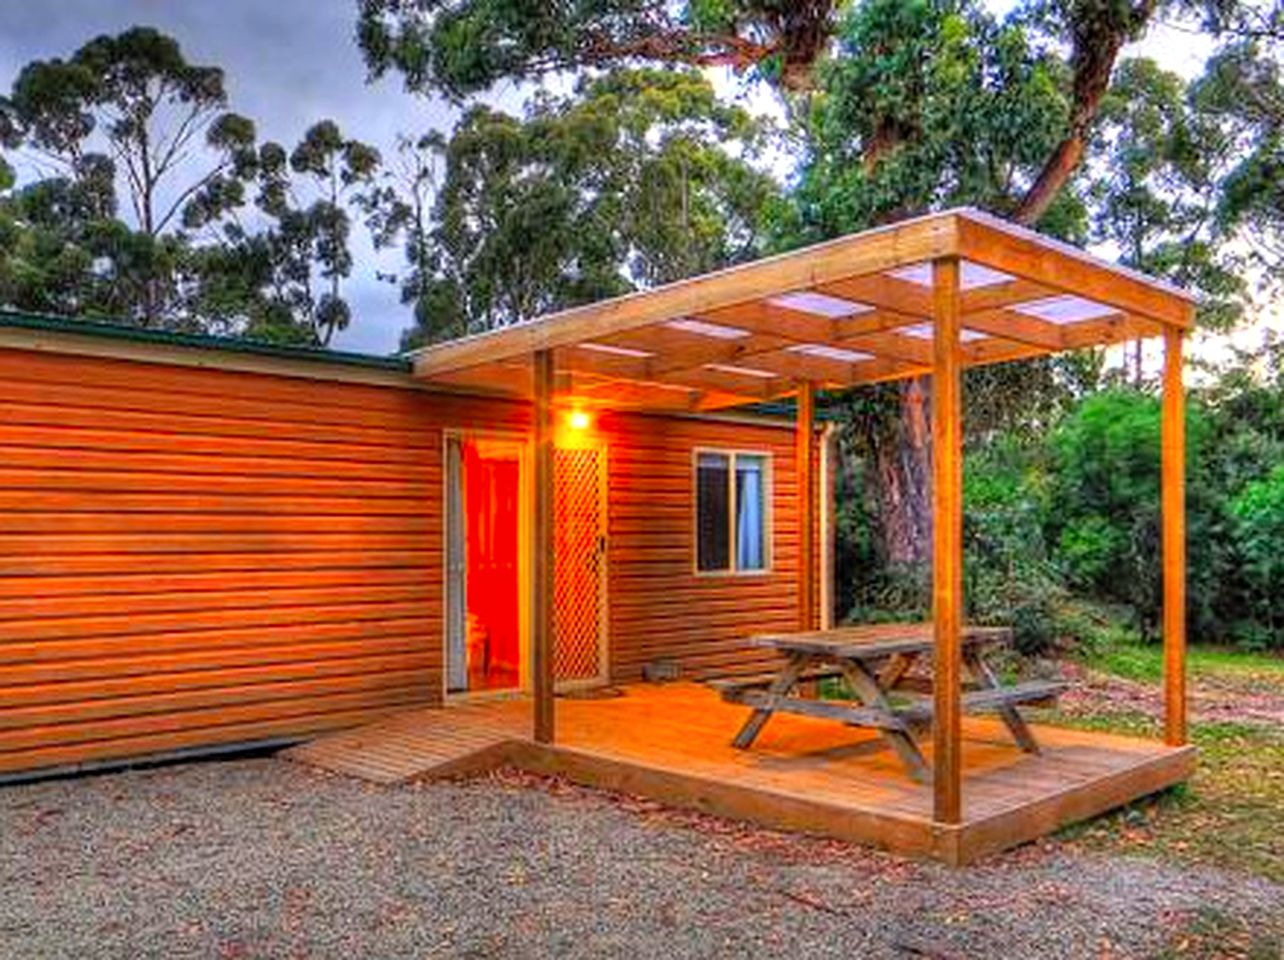 Made of wood and surrounded by nature, this Bruny Island accommodation is perfect for a family getaway in Tasmania!